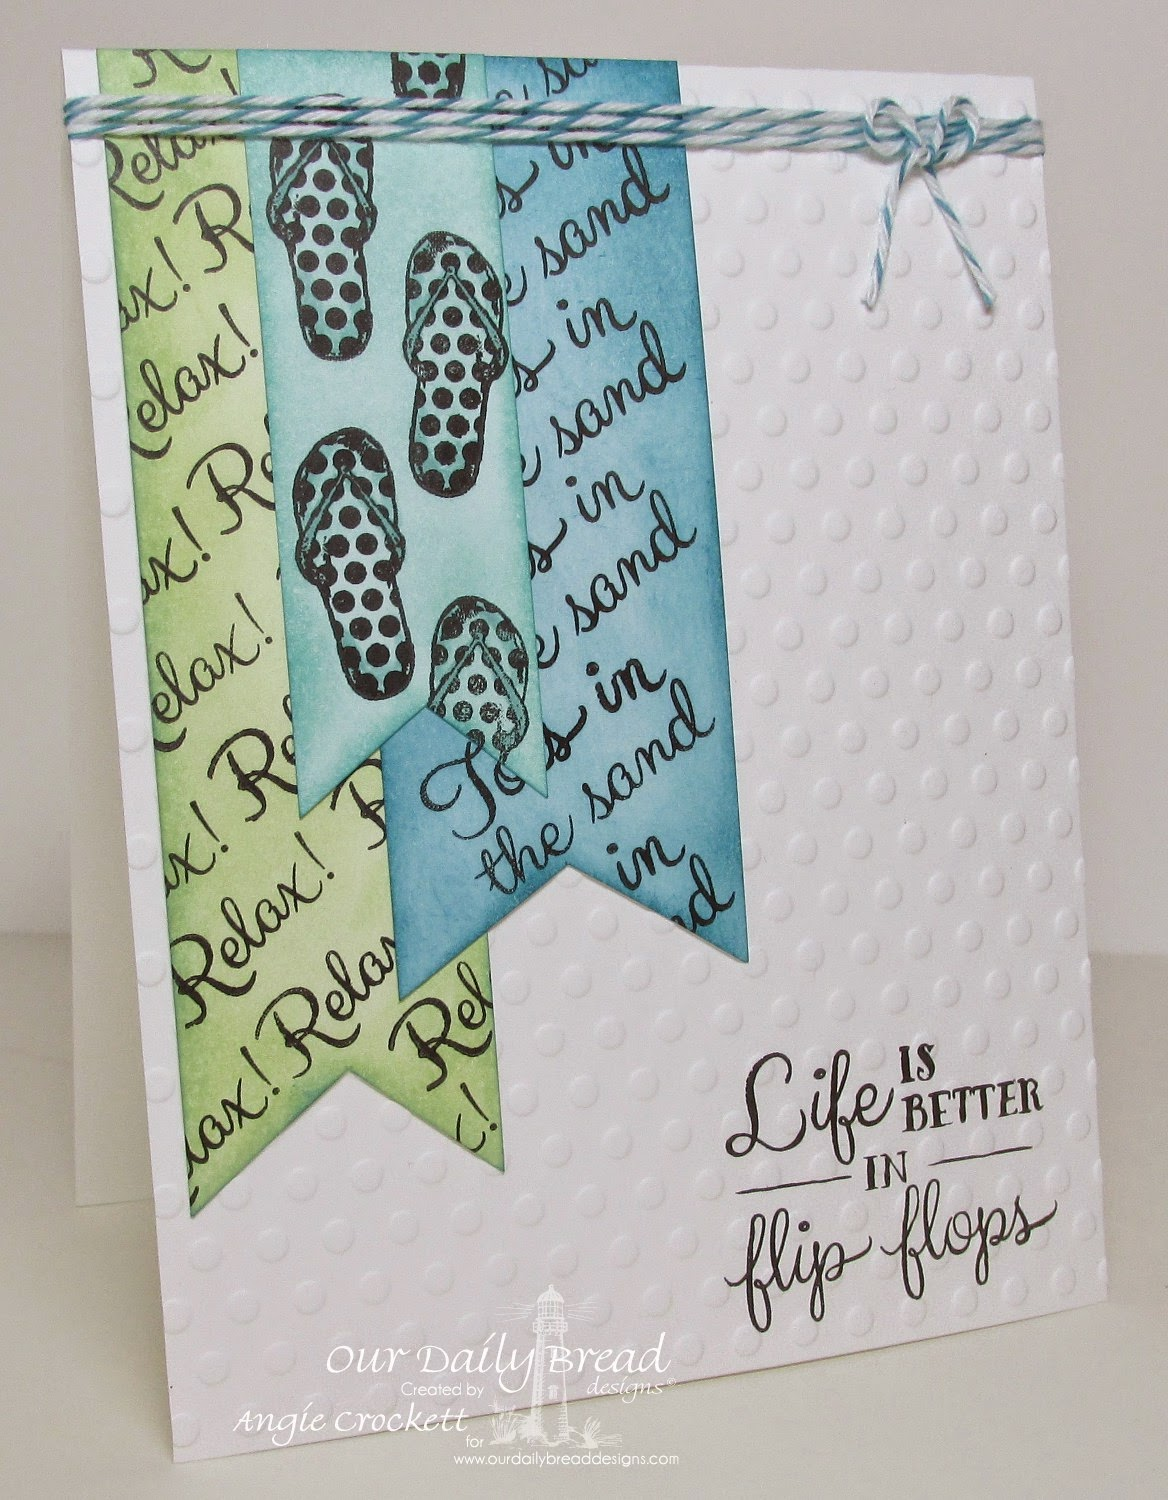 ODBD Flip Flop Fun, Life is Better, Card Designer Angie Crockett